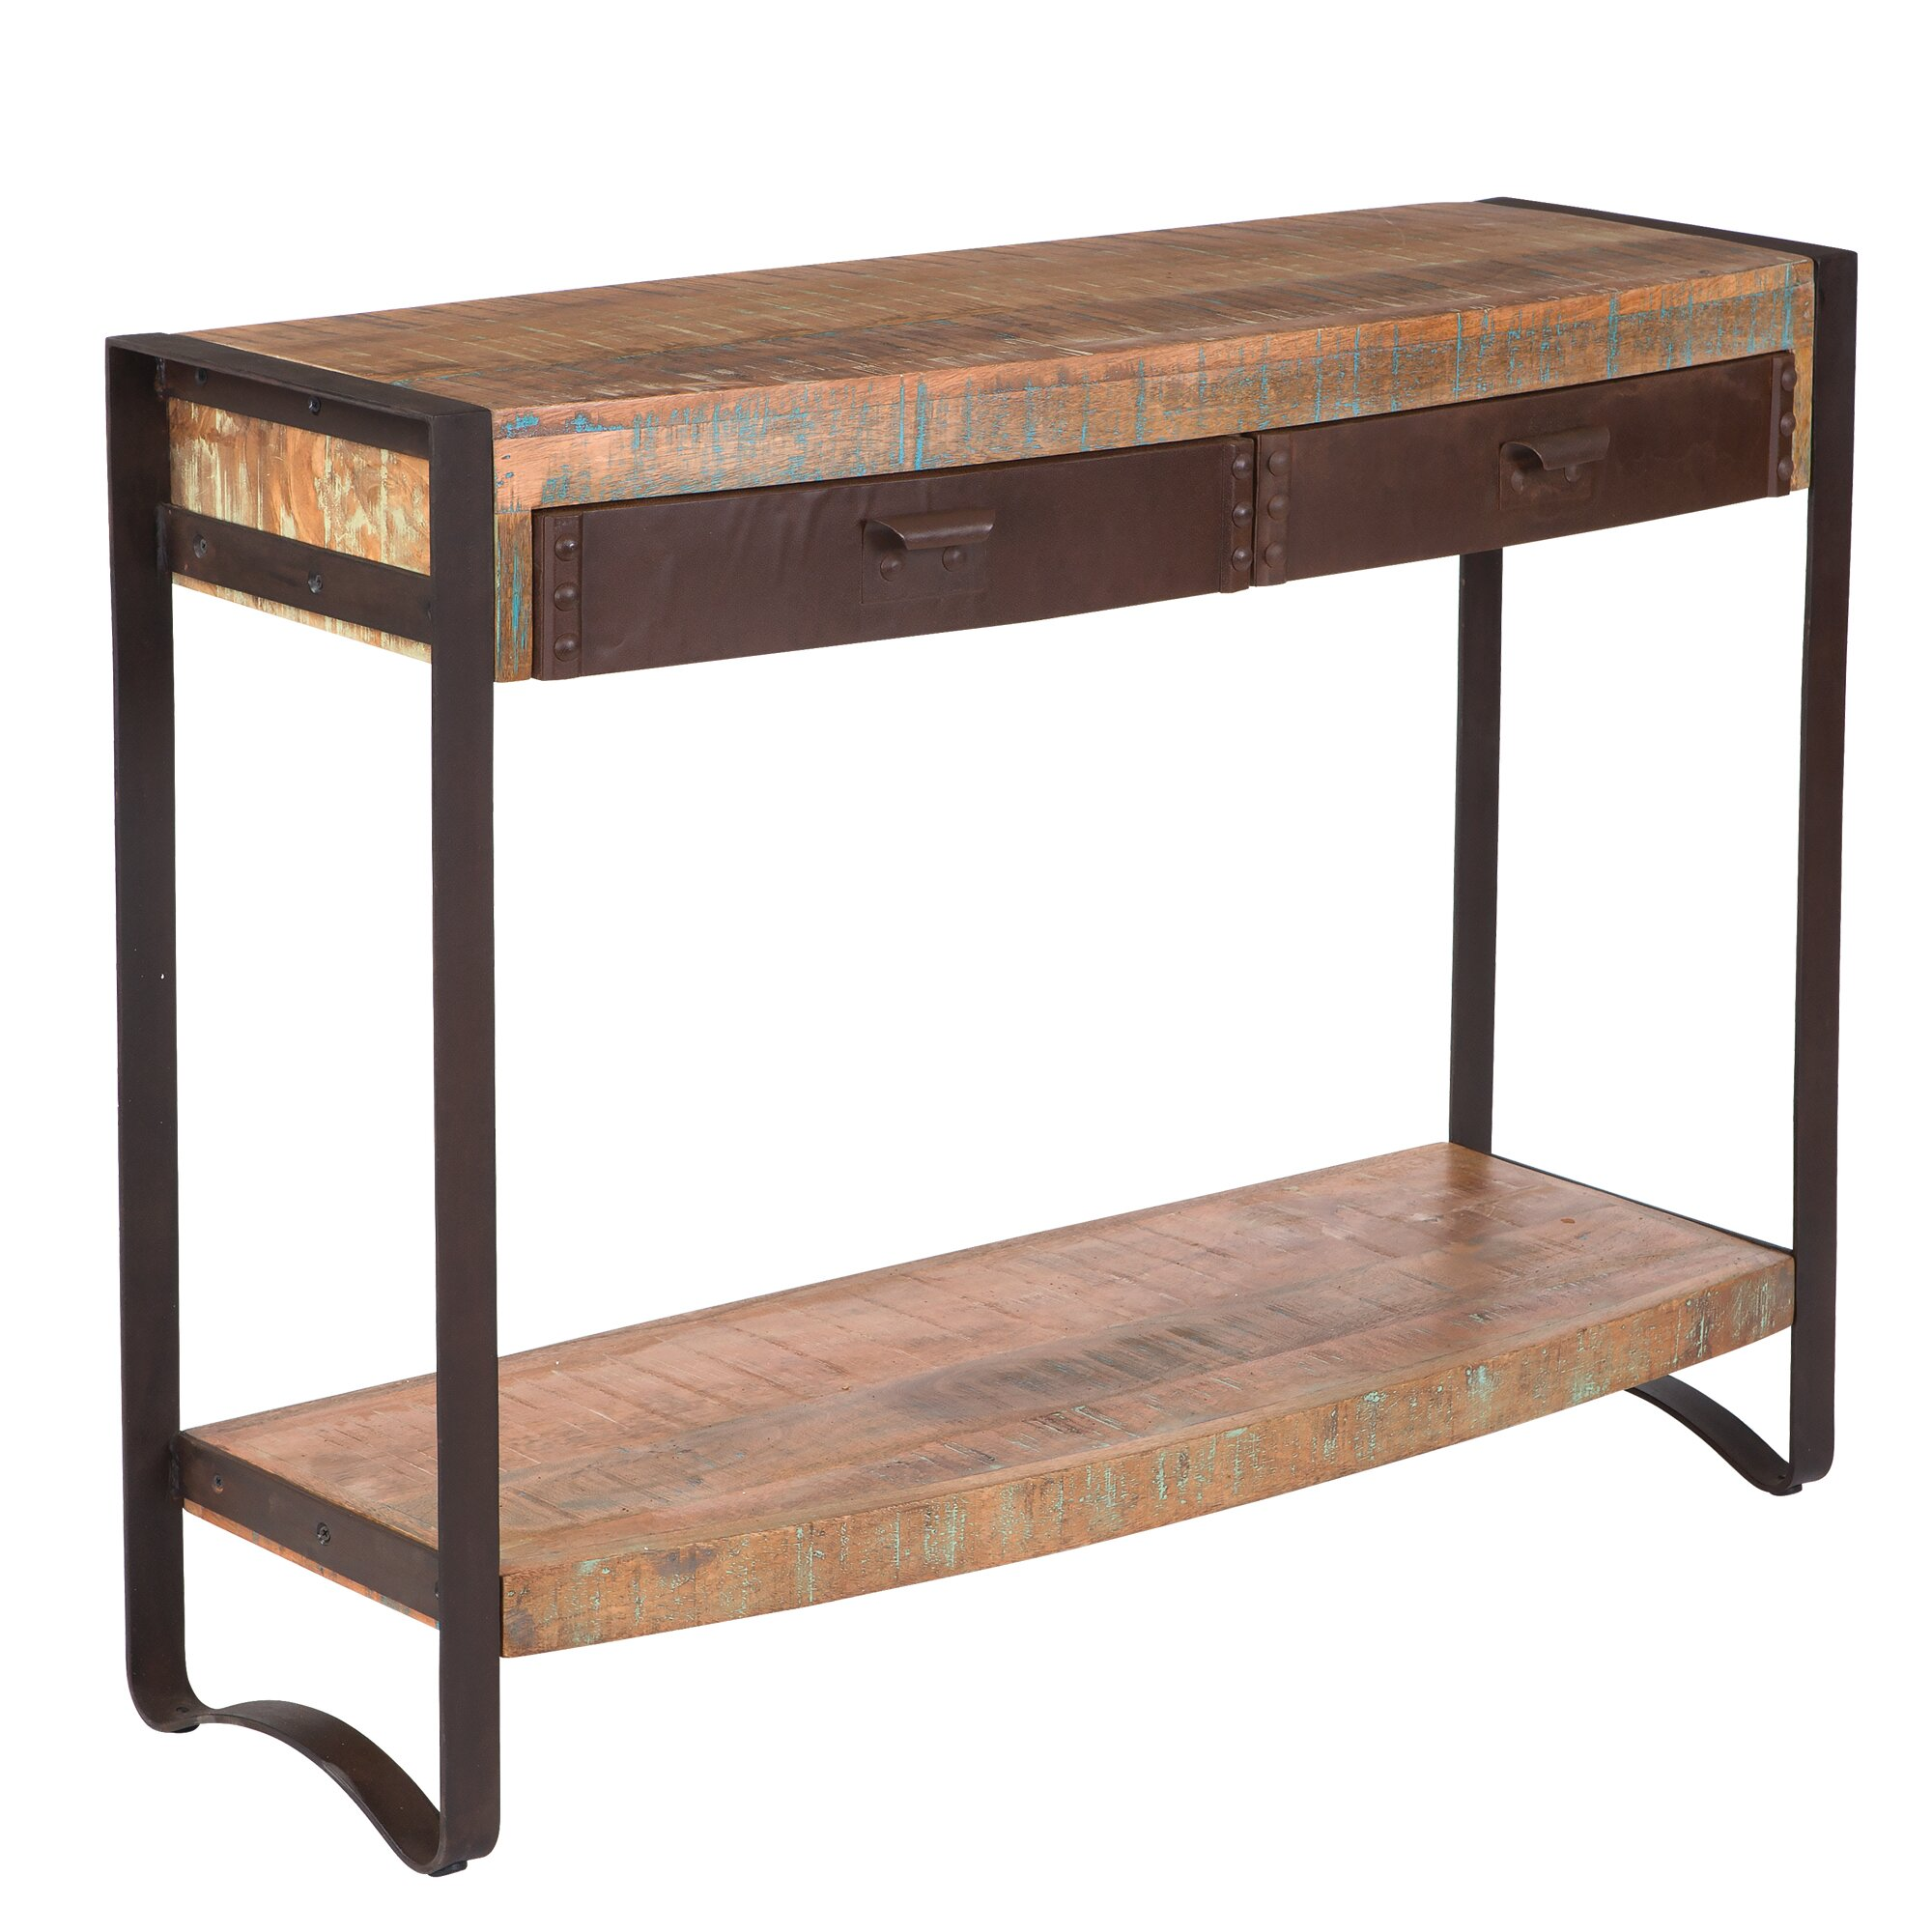 yosemite home decor console table. Black Bedroom Furniture Sets. Home Design Ideas